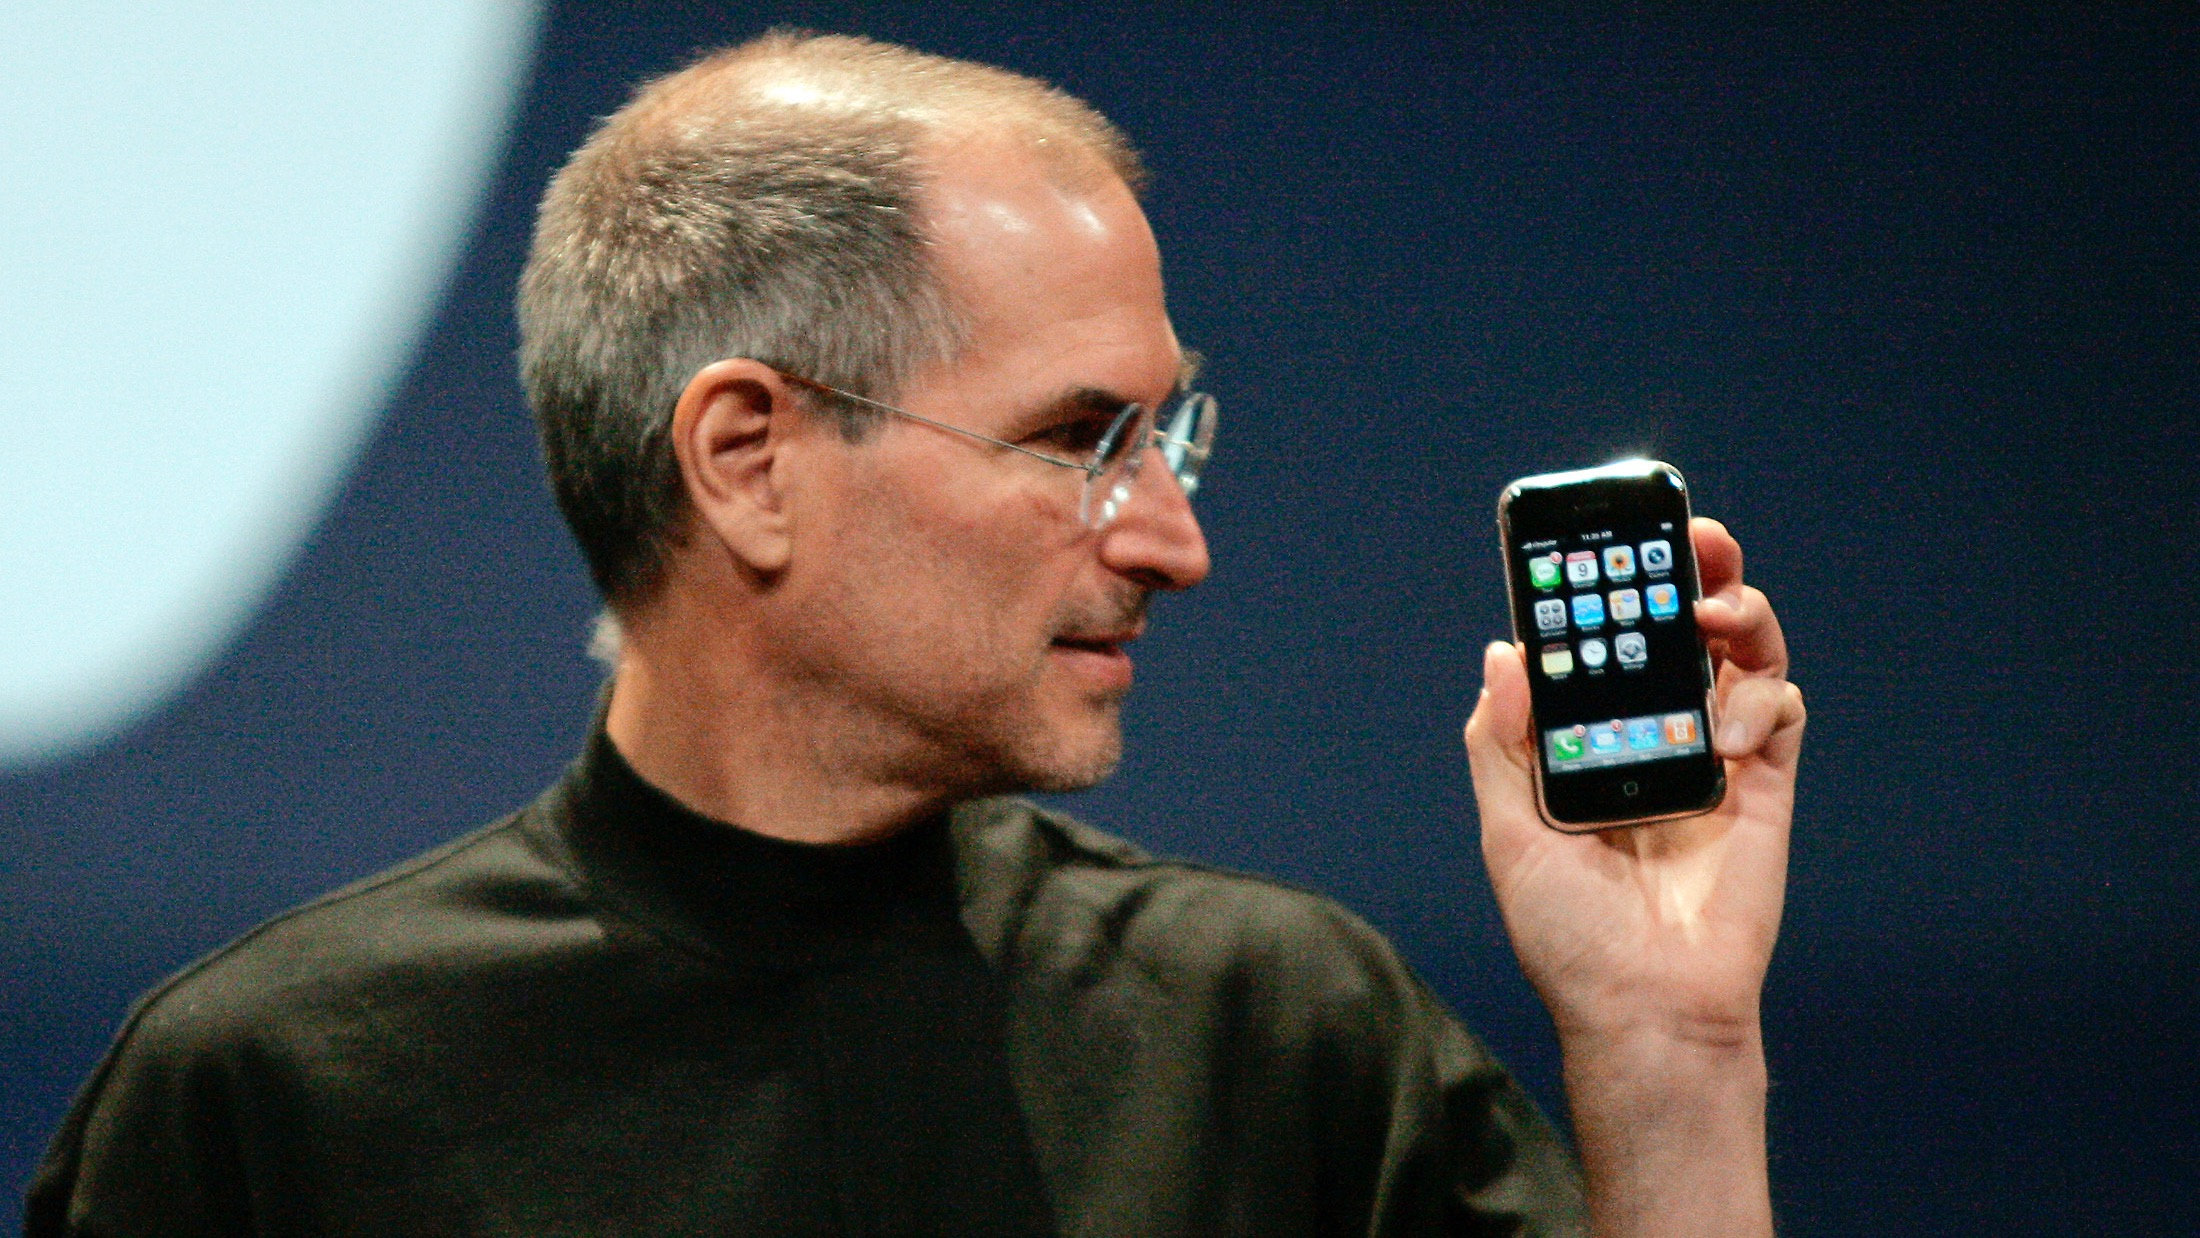 Apple Computer Inc. Chief Executive Officer Steve Jobs holds the new iPhone in San Francisco, California January 9, 2007. Apple unveiled an eagerly-anticipated iPod mobile phone with a touch-screen on Tuesday, priced at $599 for 8 gigabytes of memory, pushing the company's shares up as much as 8.5 percent. Jobs said the iPhone, which also will be available in a 4-gigabyte model for $499, will ship in June in the United States. The phones will be available in Europe in the fourth quarter and in Asia in 2008.  REUTERS/Kimberly White (UNITED STATES) FOR BEST QUALITY IMAGE SEE: GM1E7AE0B8F01 - RTR1L0YV